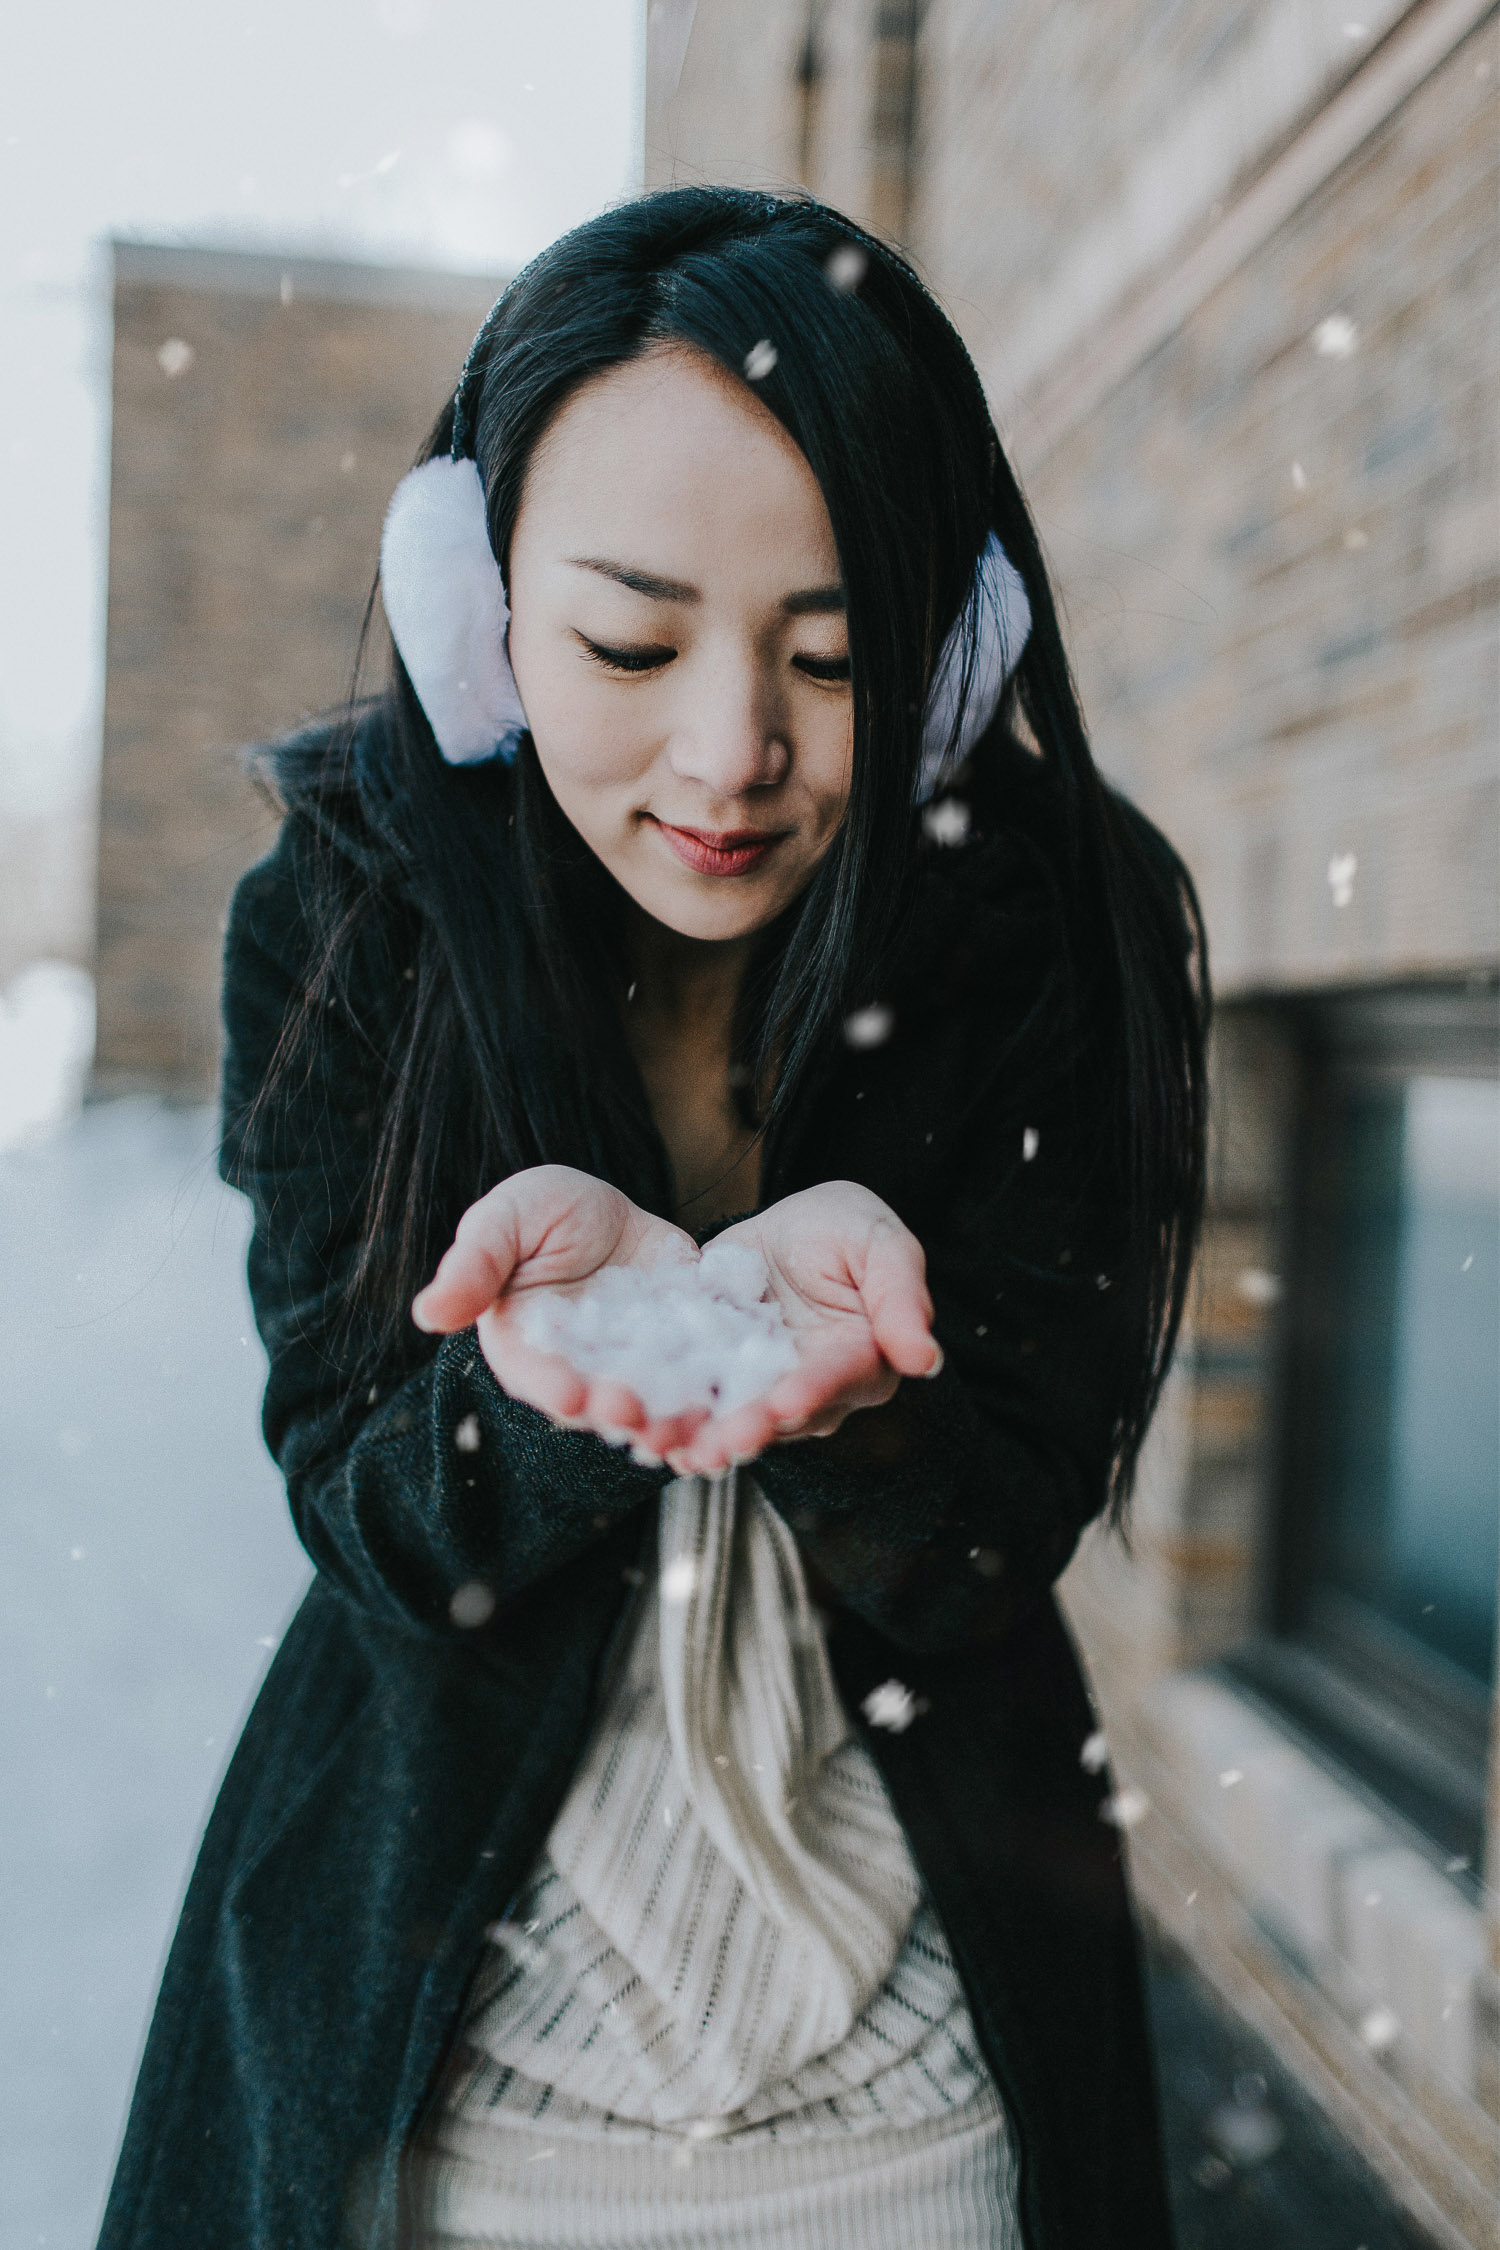 Image of a girl looks at the snow in her hands